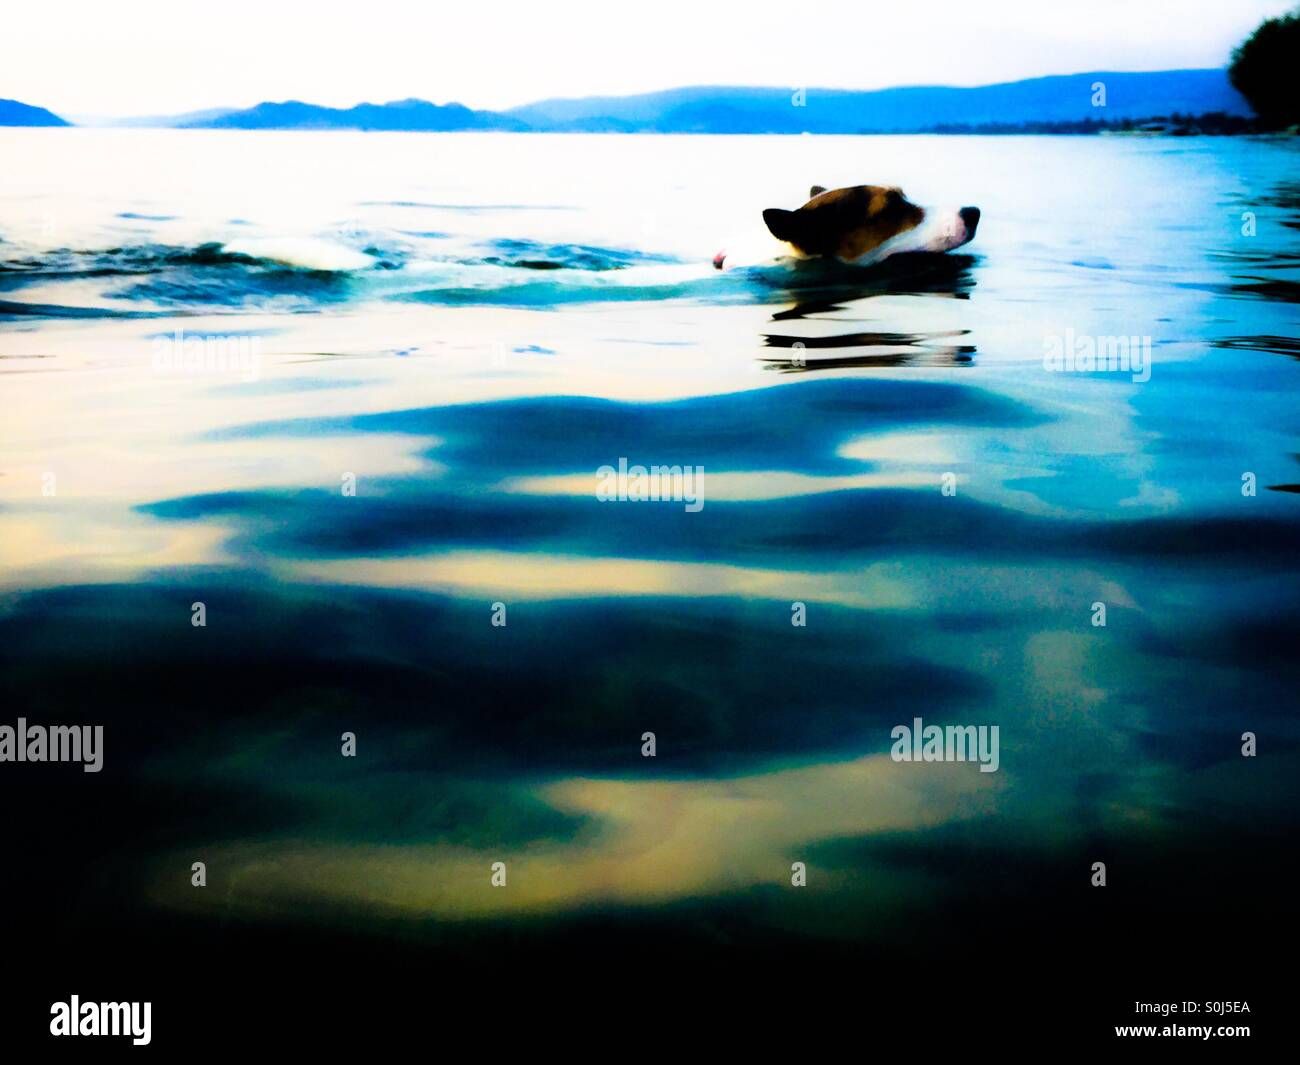 Dog swimming in a lake on a summer evening. - Stock Image